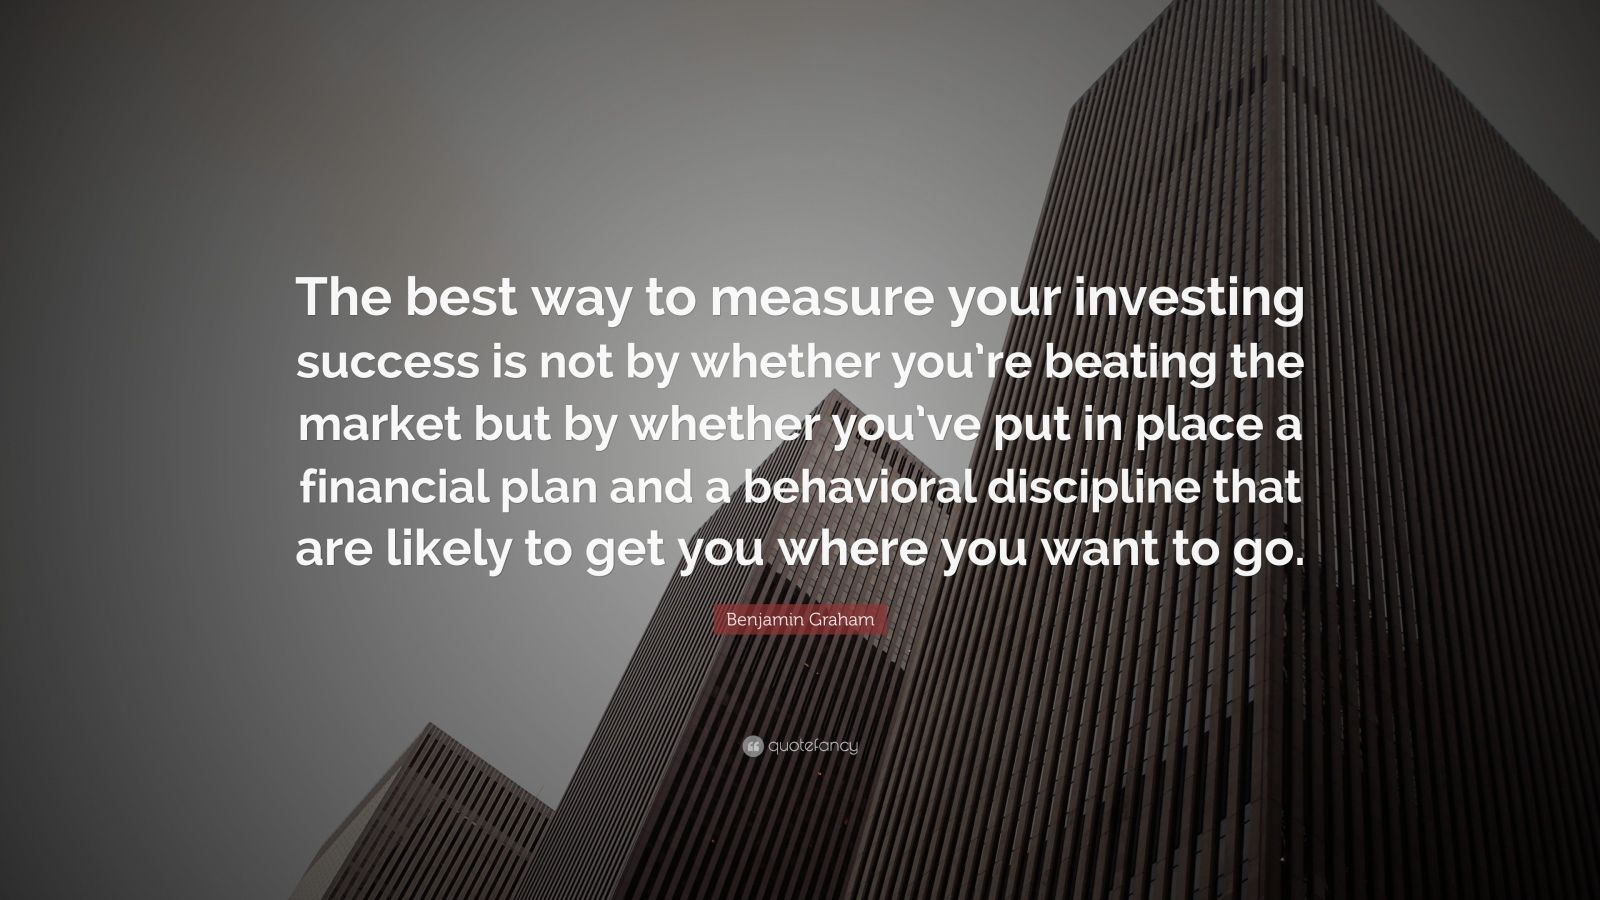 """Benjamin Graham Quote: """"The best way to measure your investing success is not by whether you're beating the market but by whether you've put in place a financial plan and a behavioral discipline that are likely to get you where you want to go."""""""